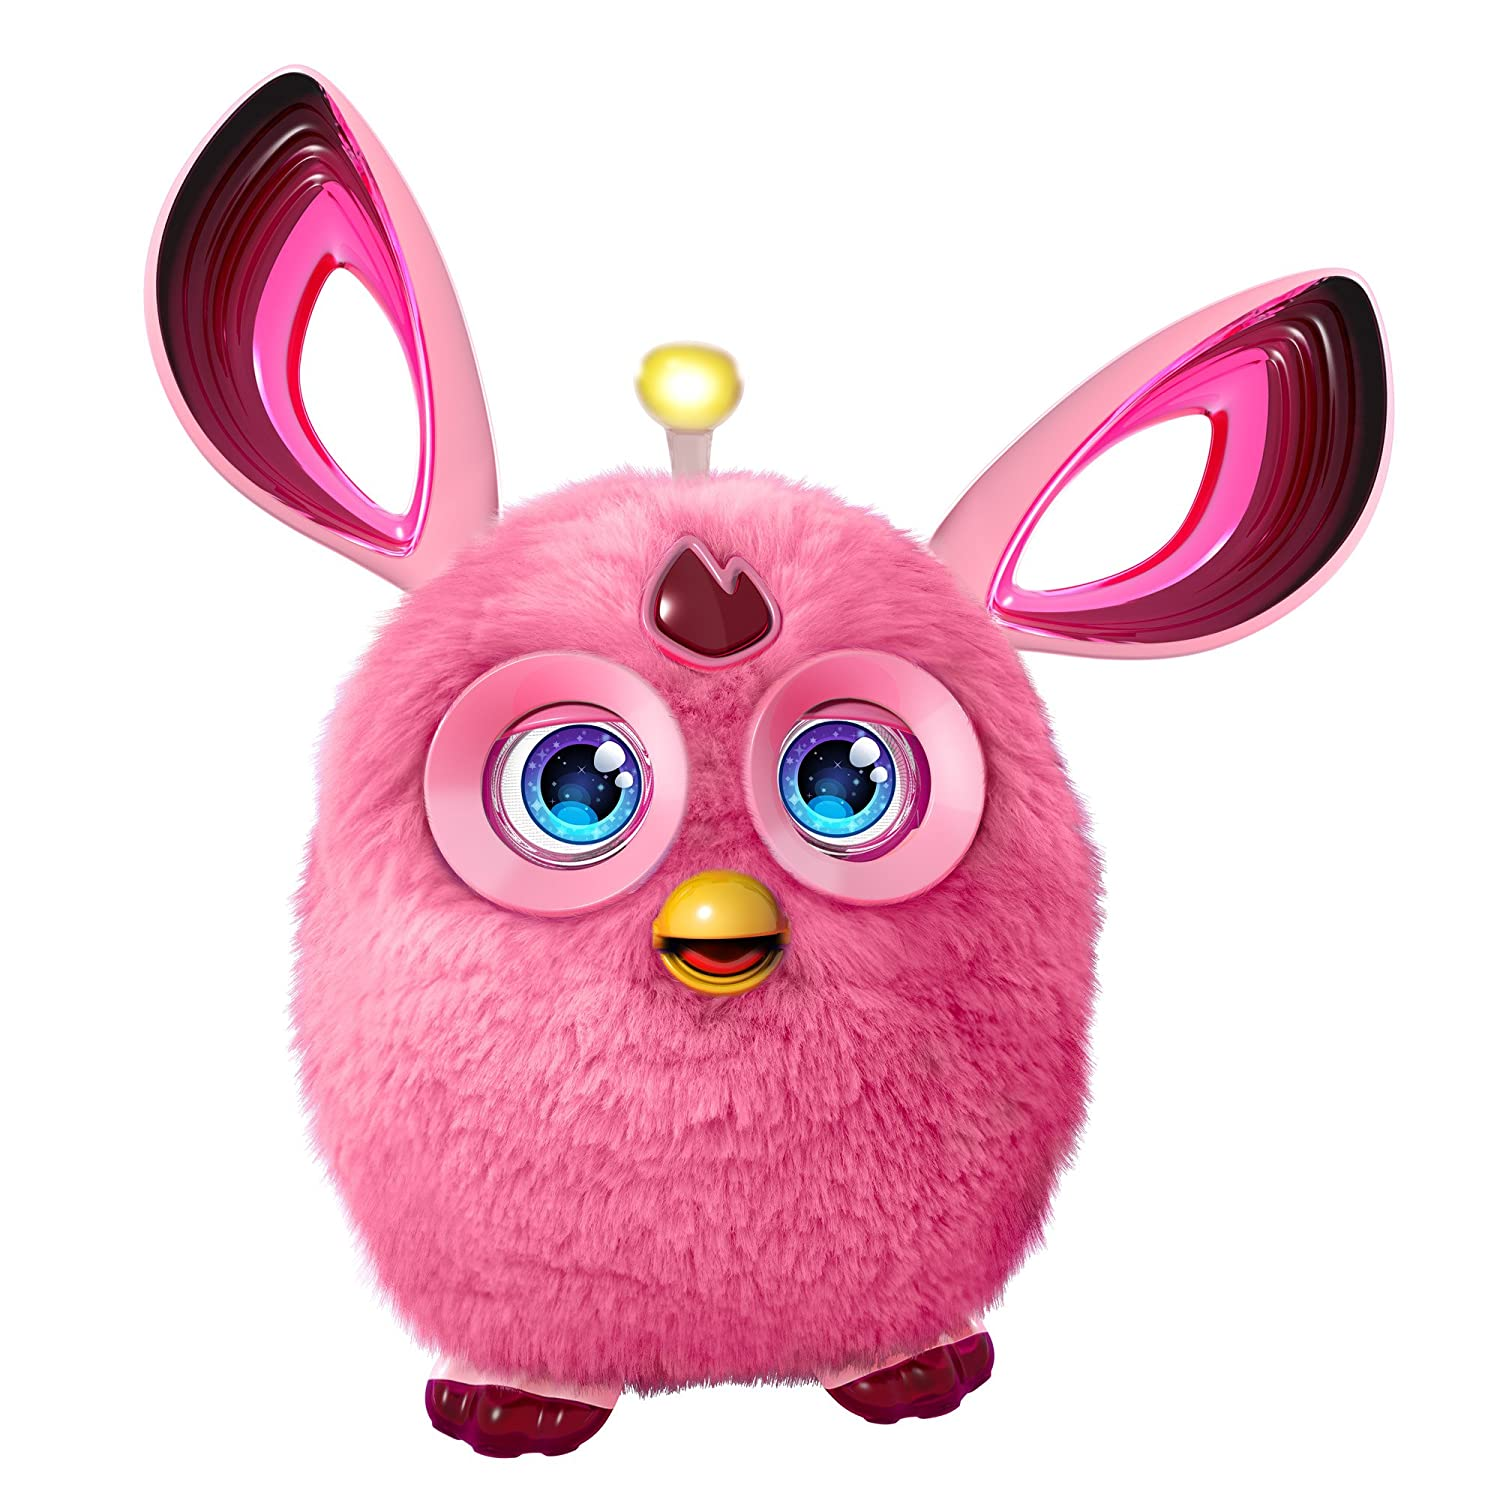 $57.63 (was $99.99) Furby Connect (Pink)